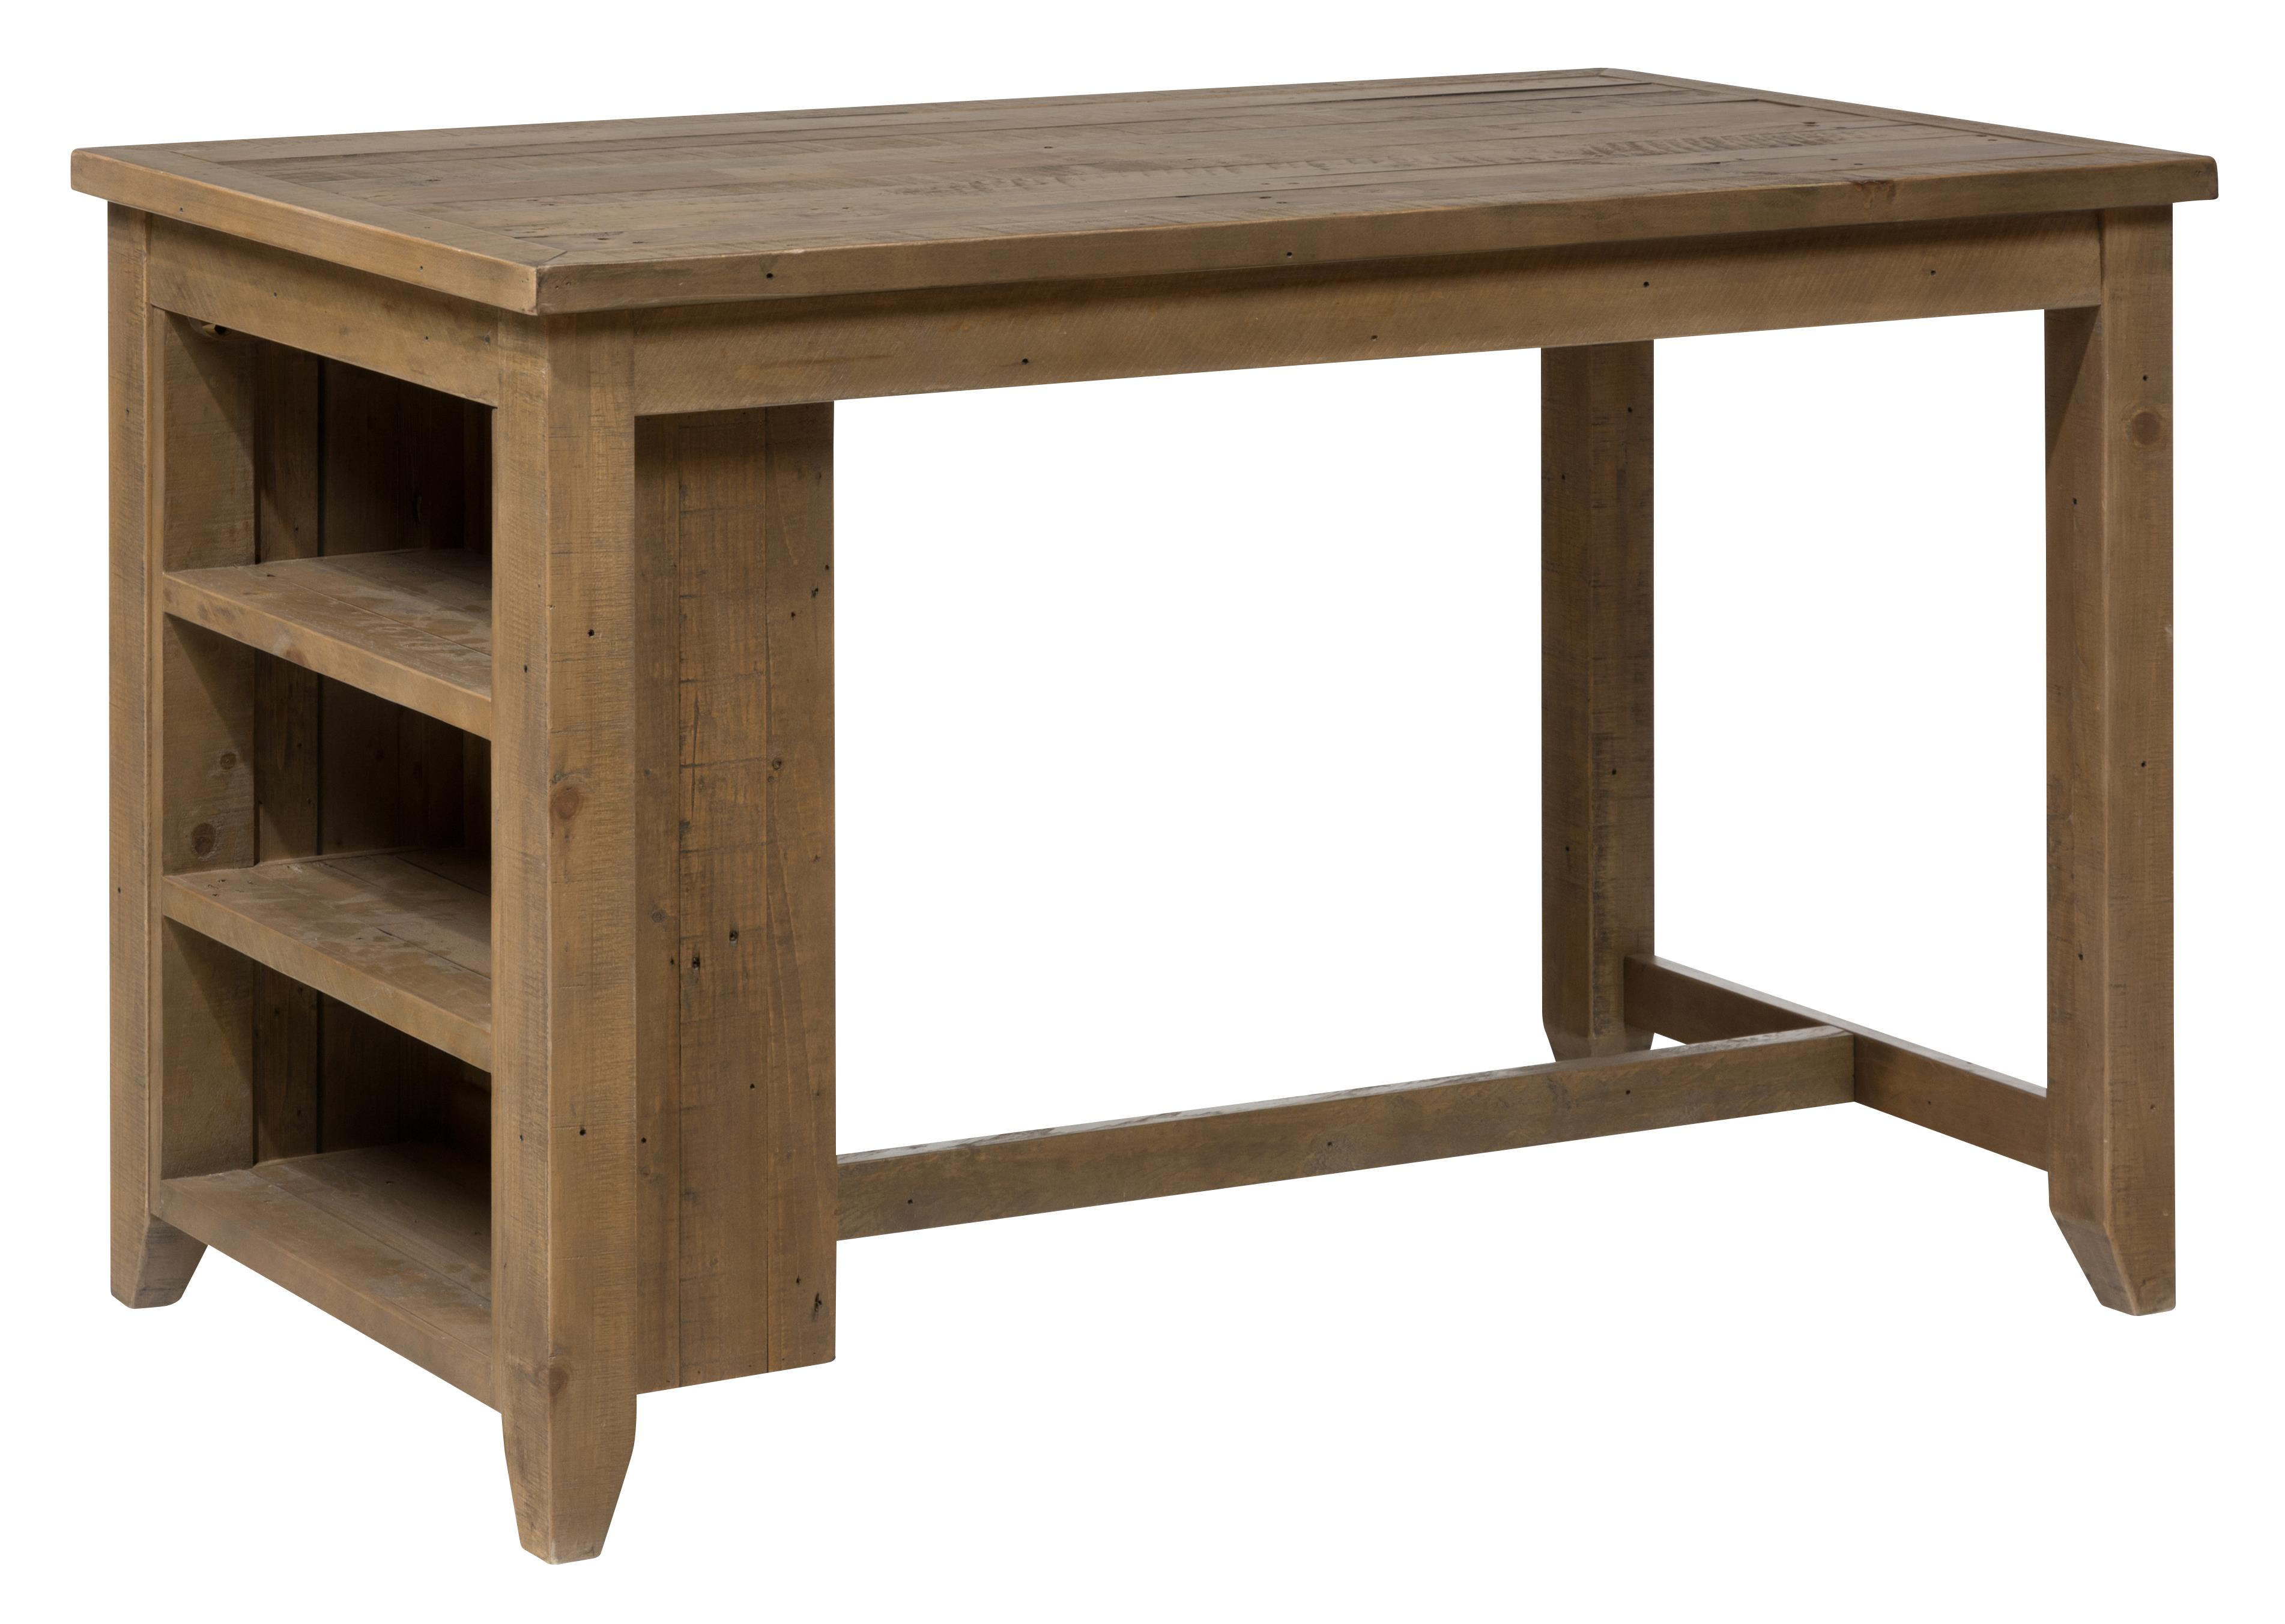 Counter Height Table With 3 Shelf Storage